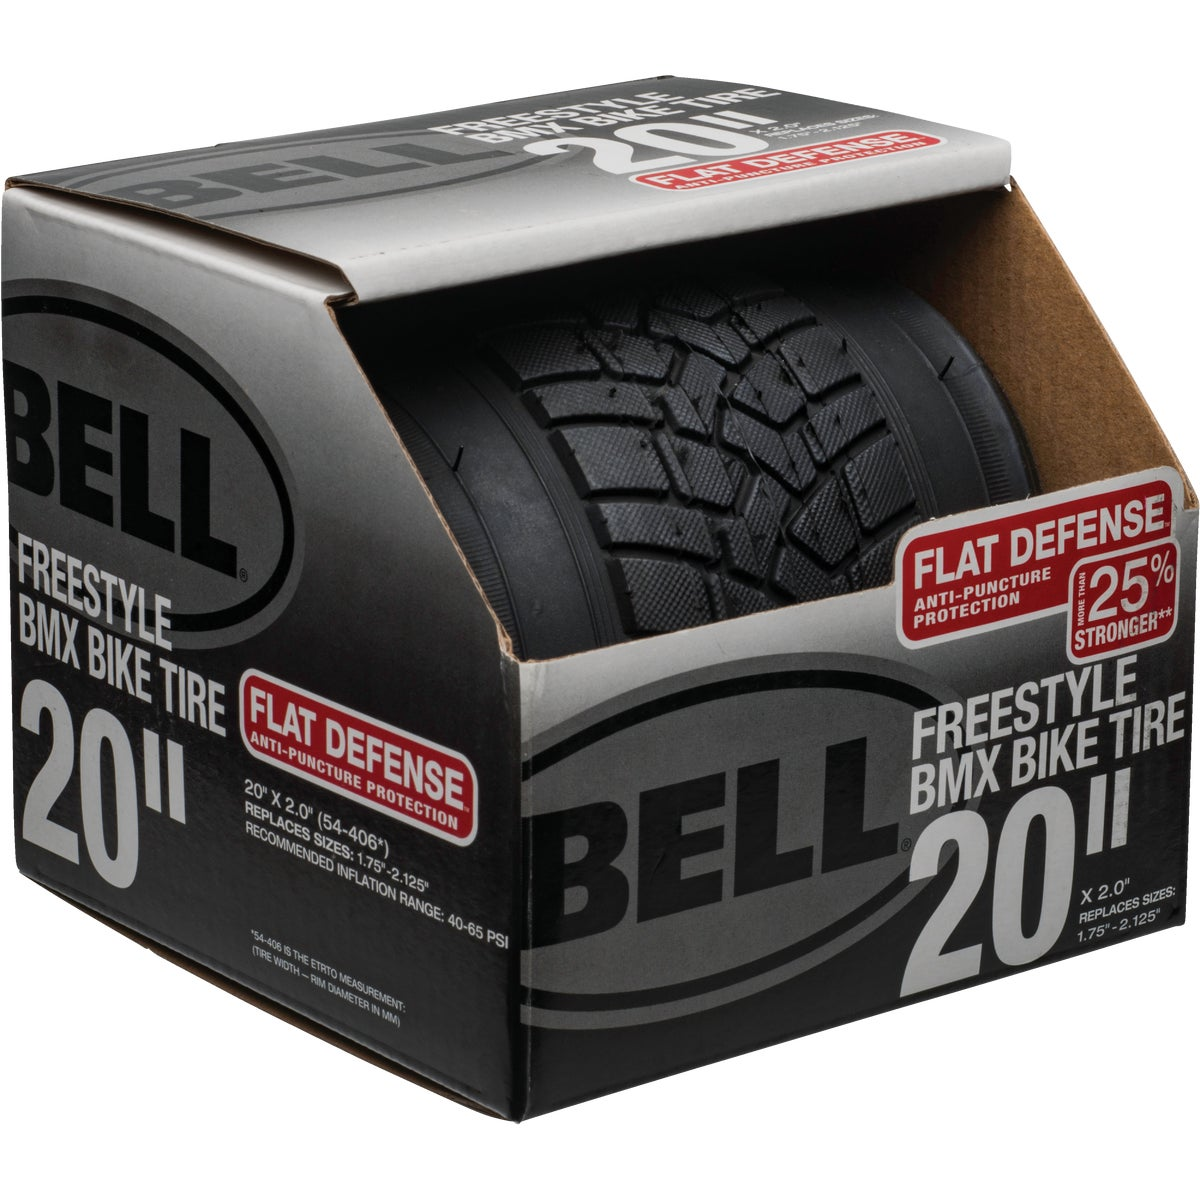 "20"" FREESTYLE BIKE TIRE - 7014698 by Bell Sports"